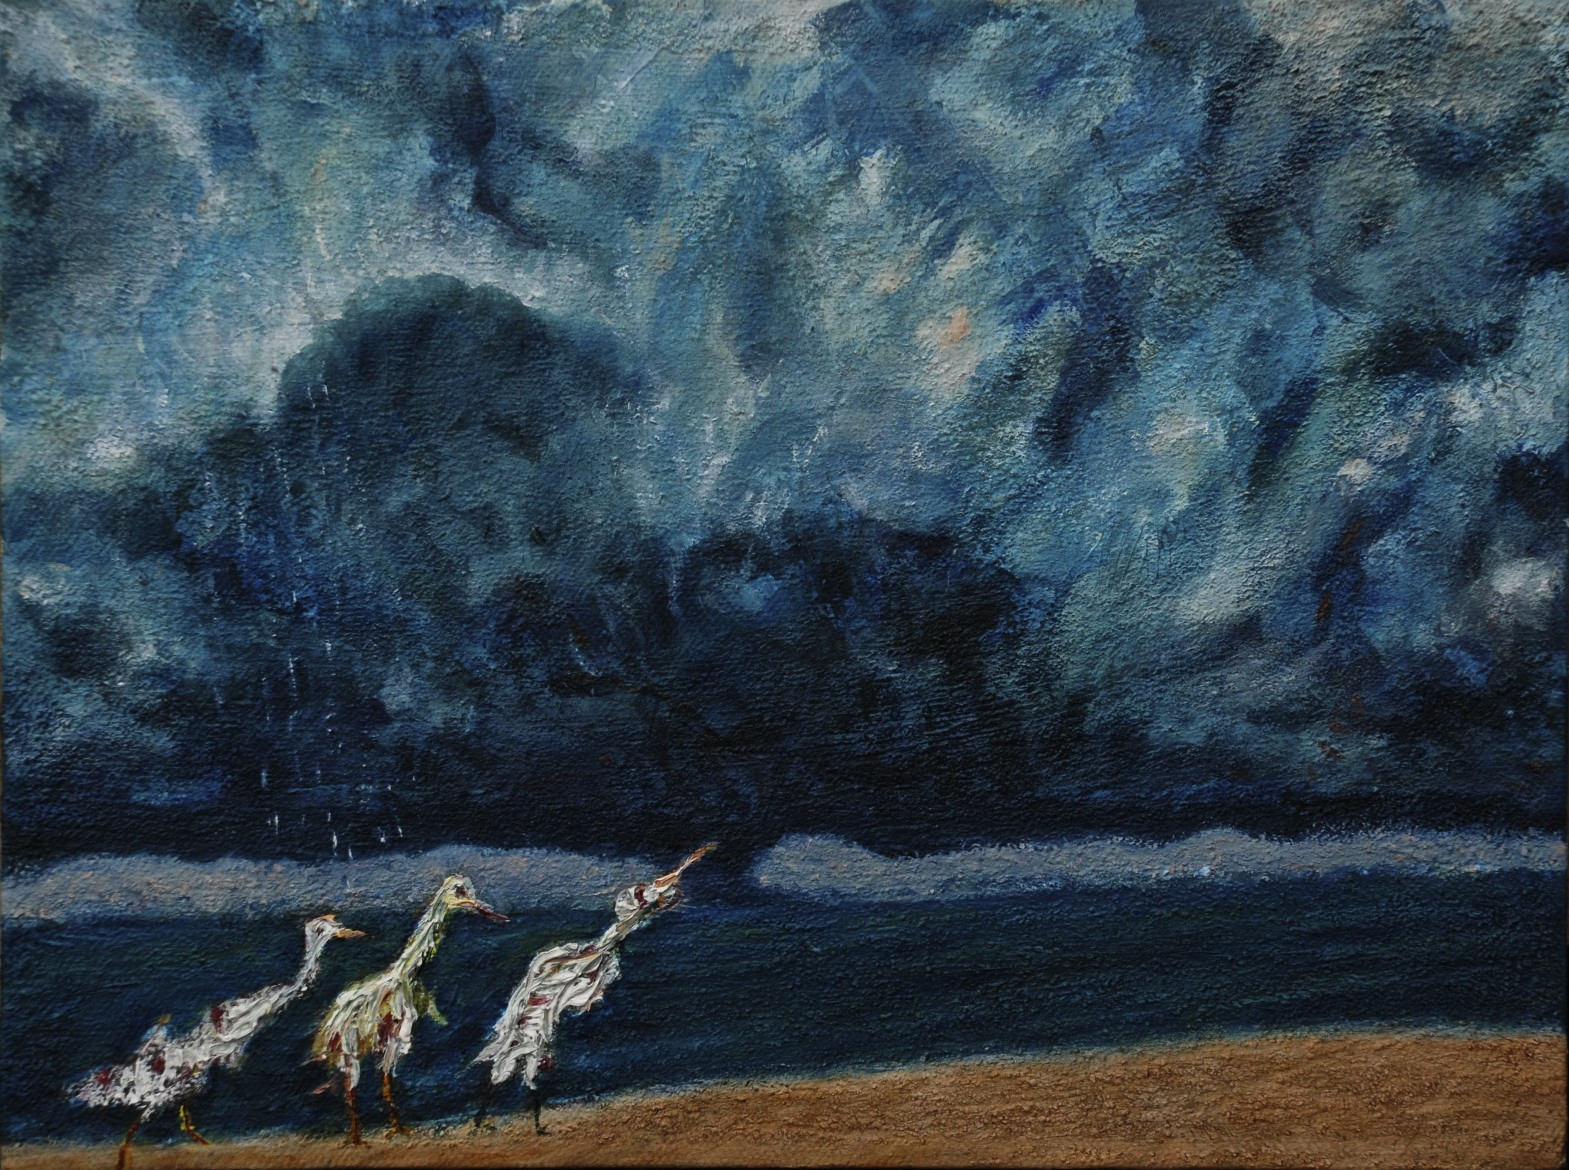 Crazed Birds on a Stormy Shore, oil on canvas, 23 x 30.5 cm, 2018